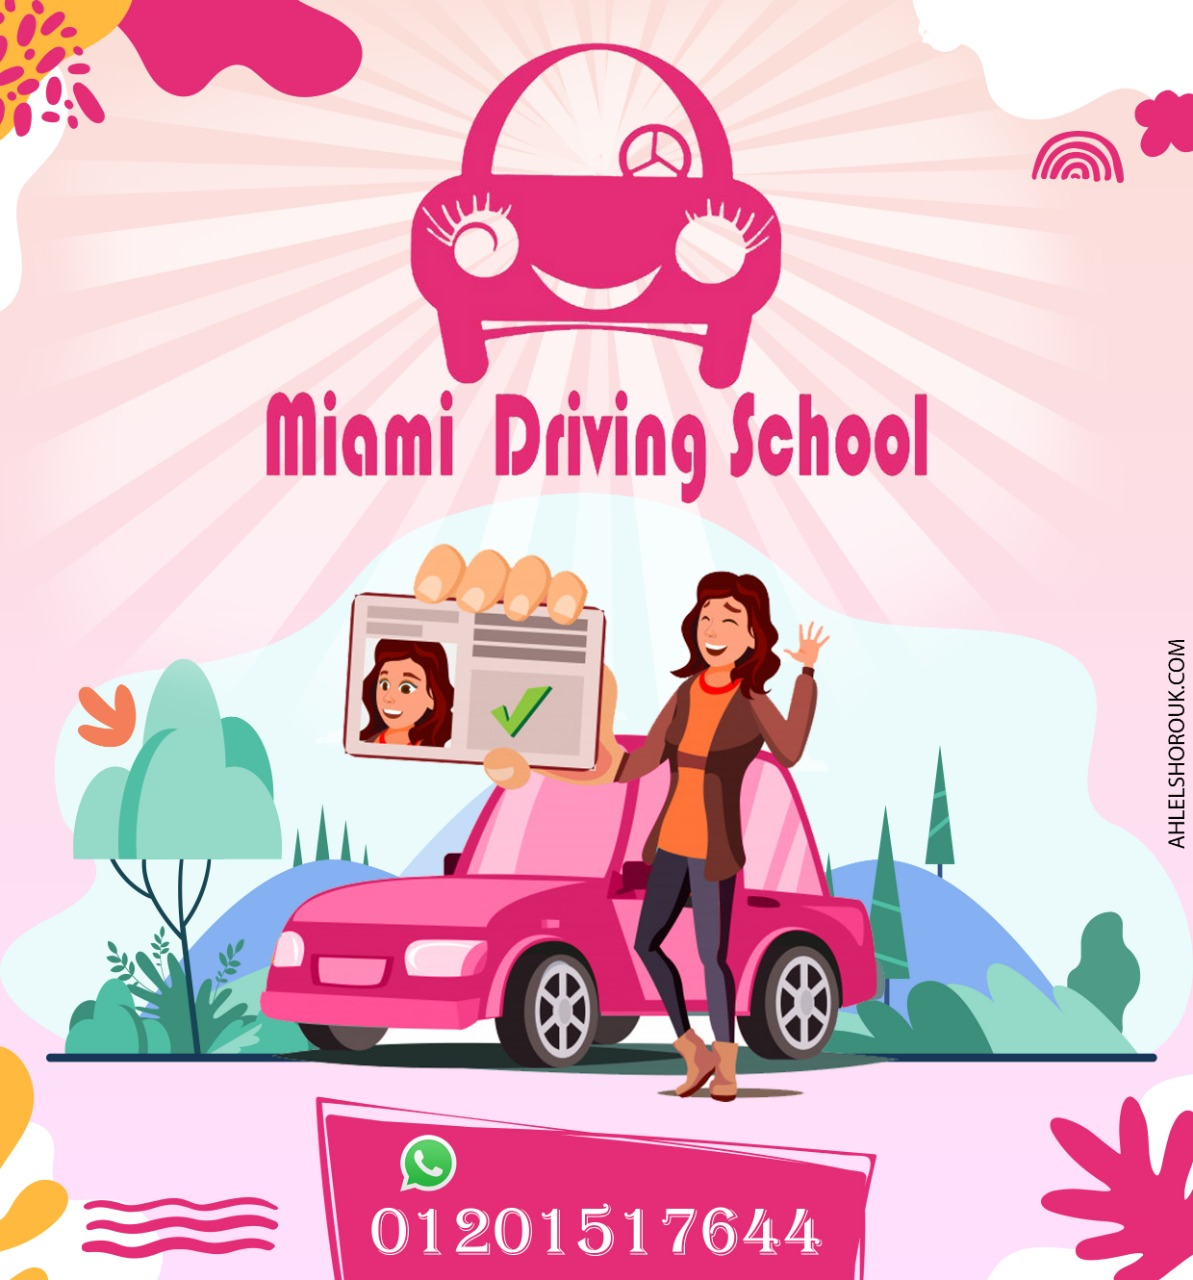 Miami Driving School